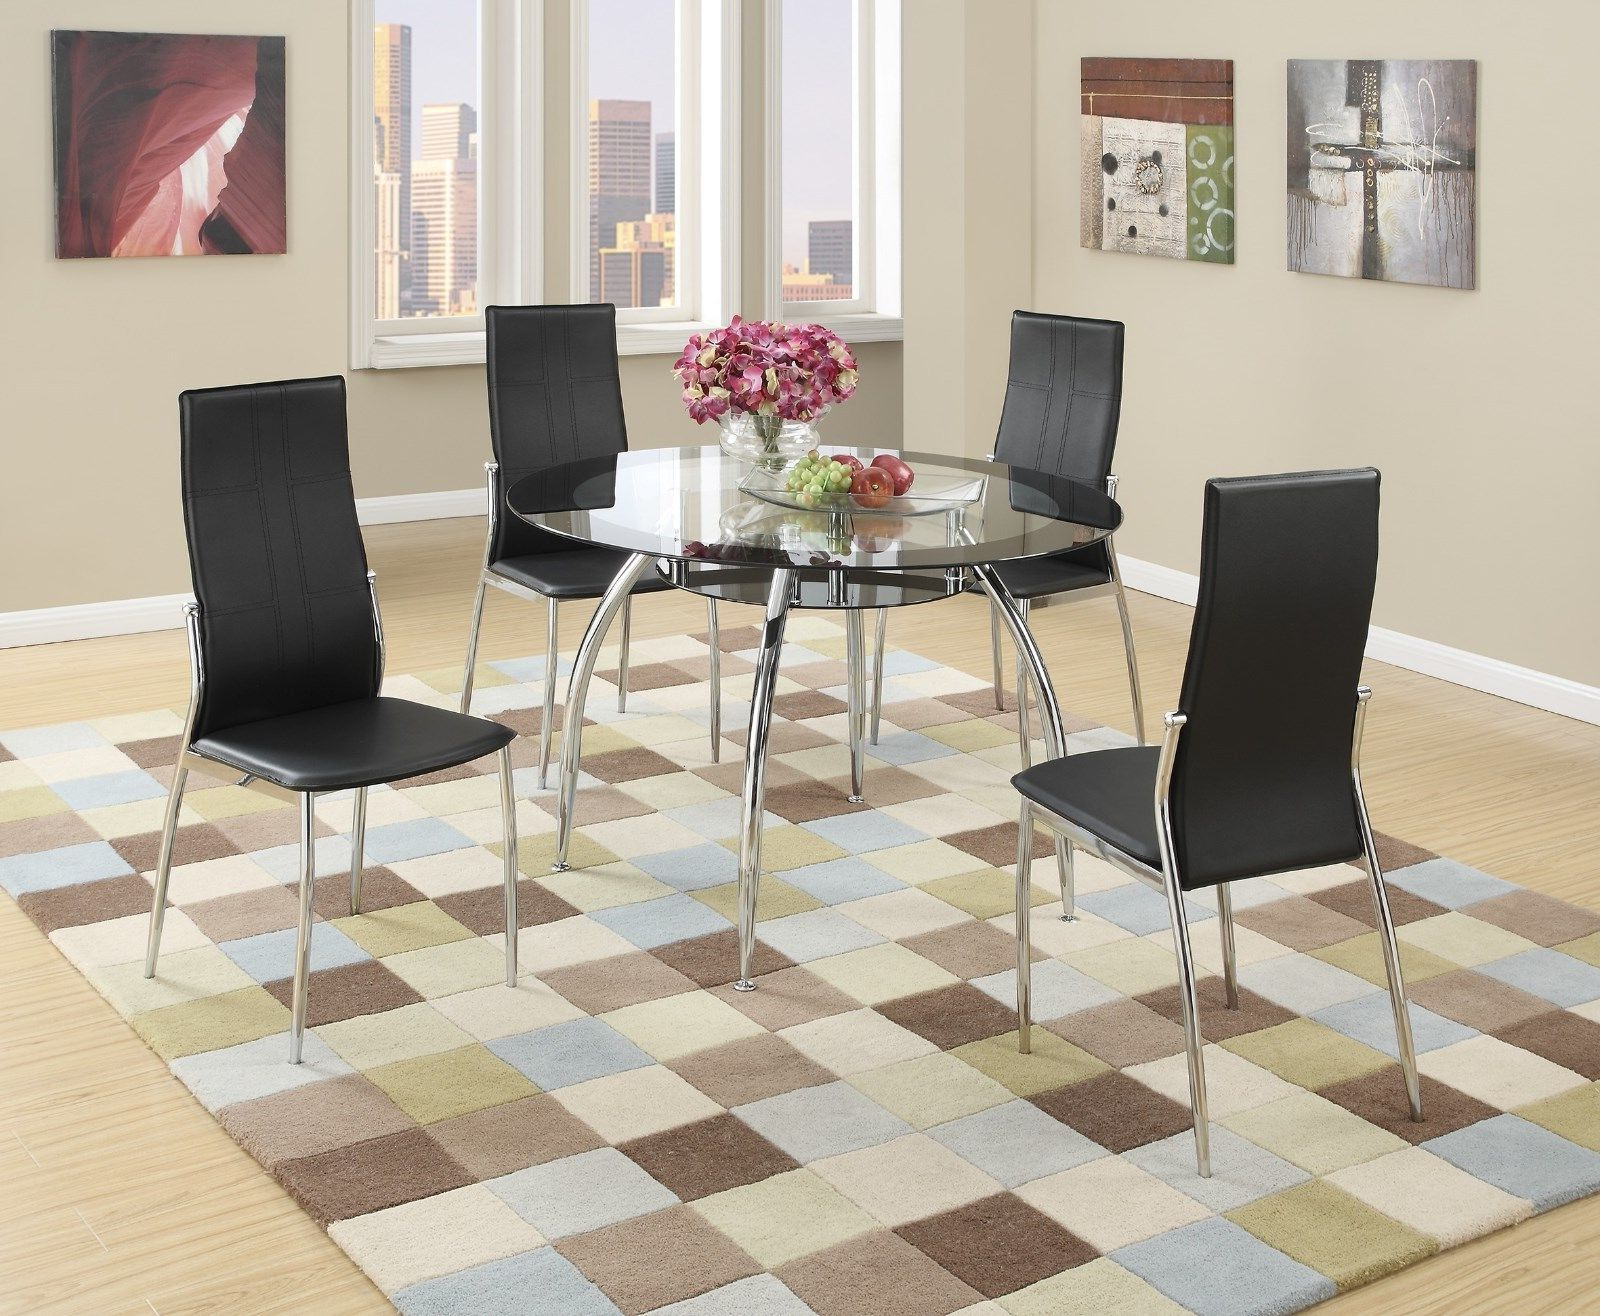 Most Current Details About New Tulsa Ii Modern Round Black Chrome Metal Glass Top Dining Table Kitchen Set Inside Modern Round Glass Top Dining Tables (View 22 of 25)